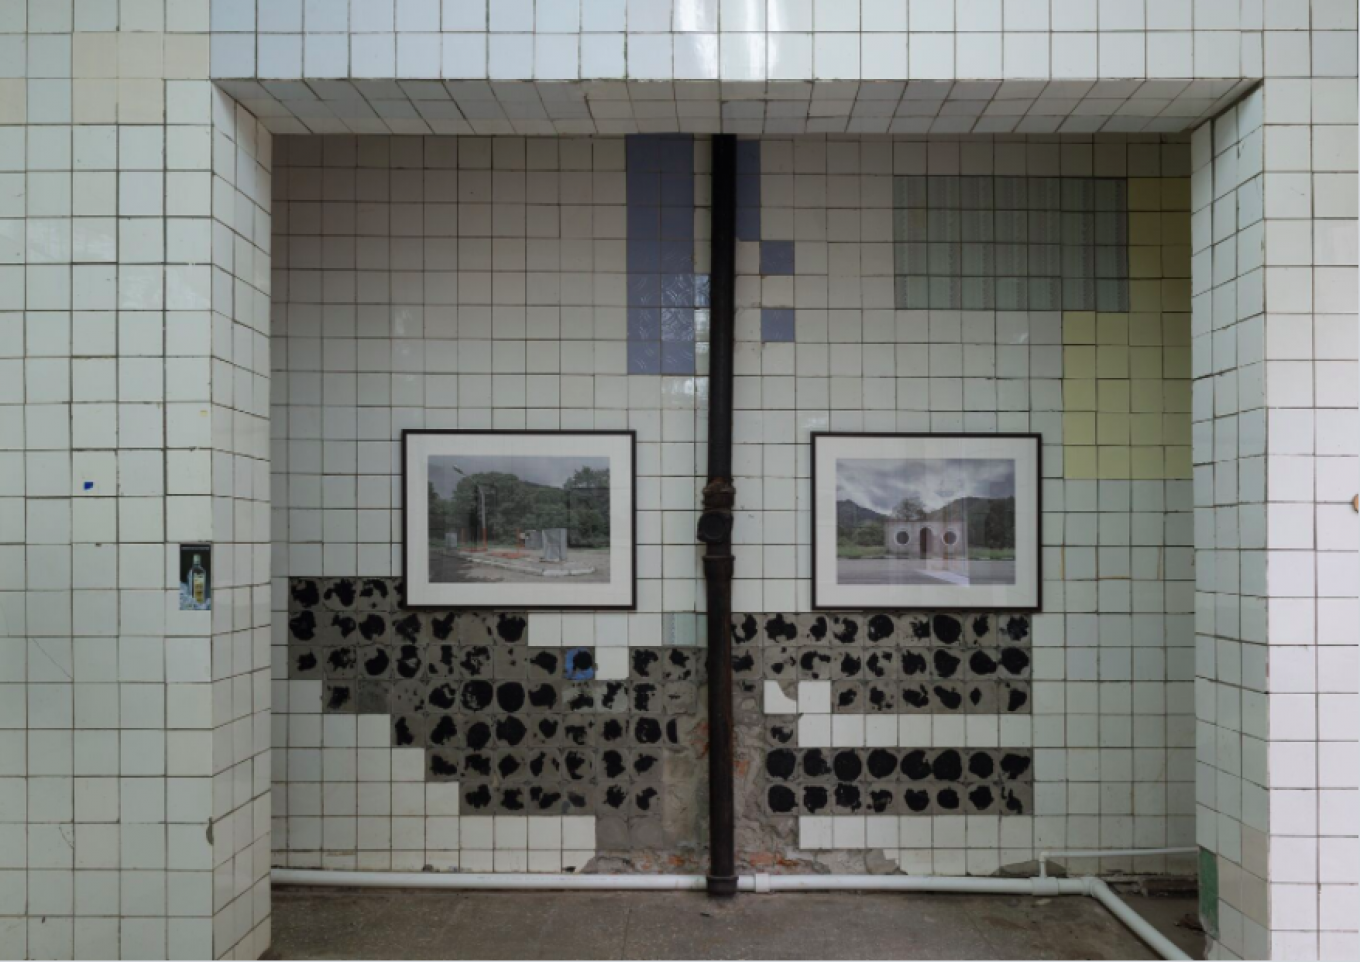 Yury Palmin chose to exhibit his architectural photographs in a disused grocery store. Art Management